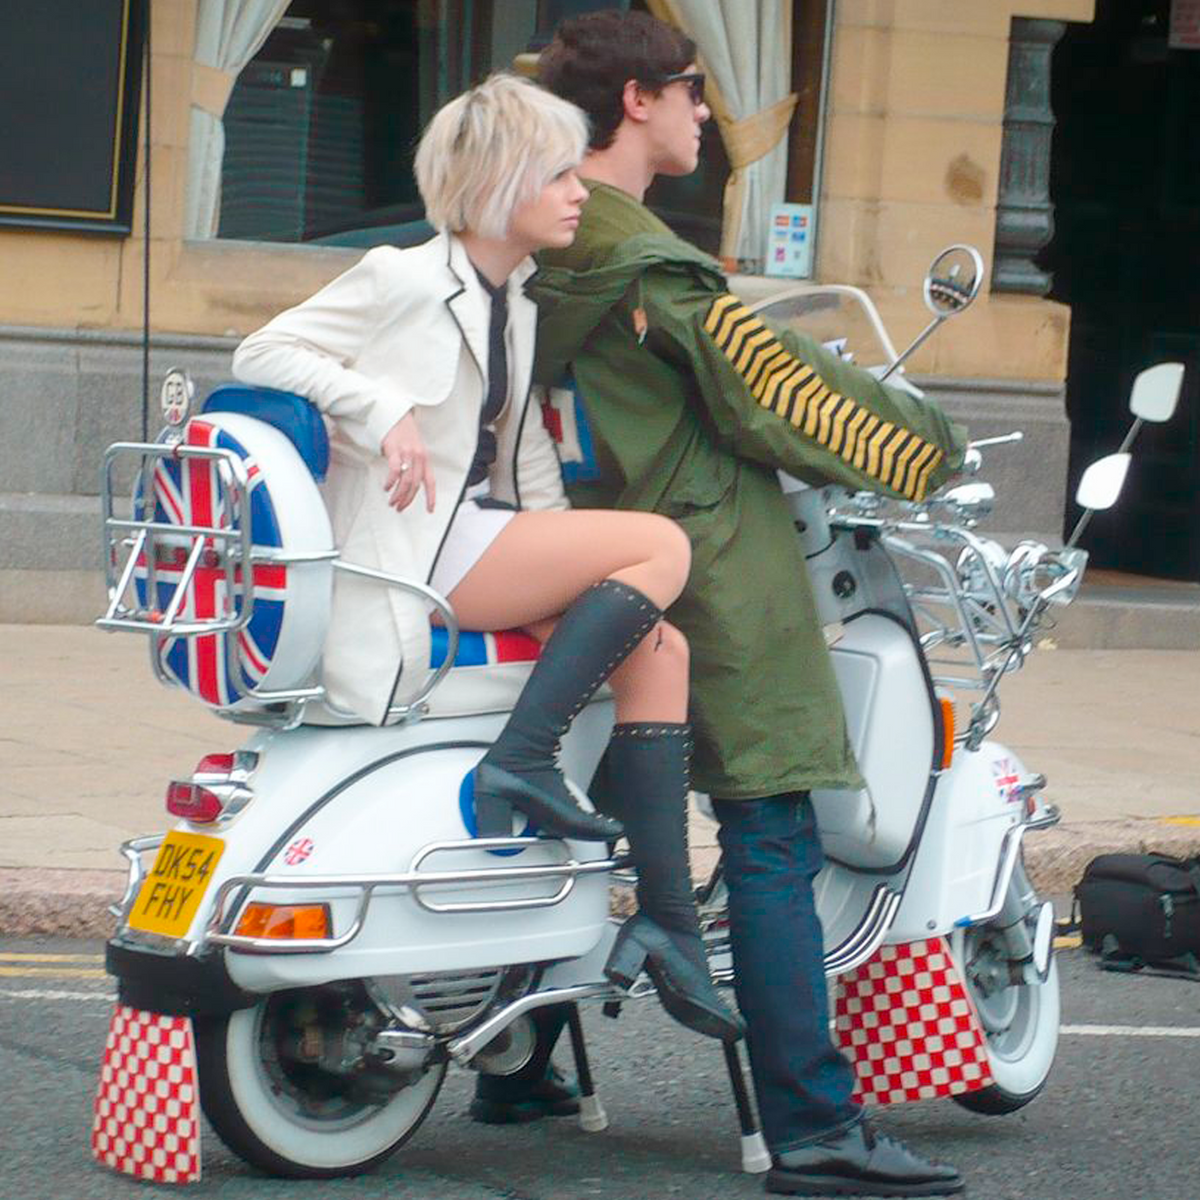 We Are the Mods!